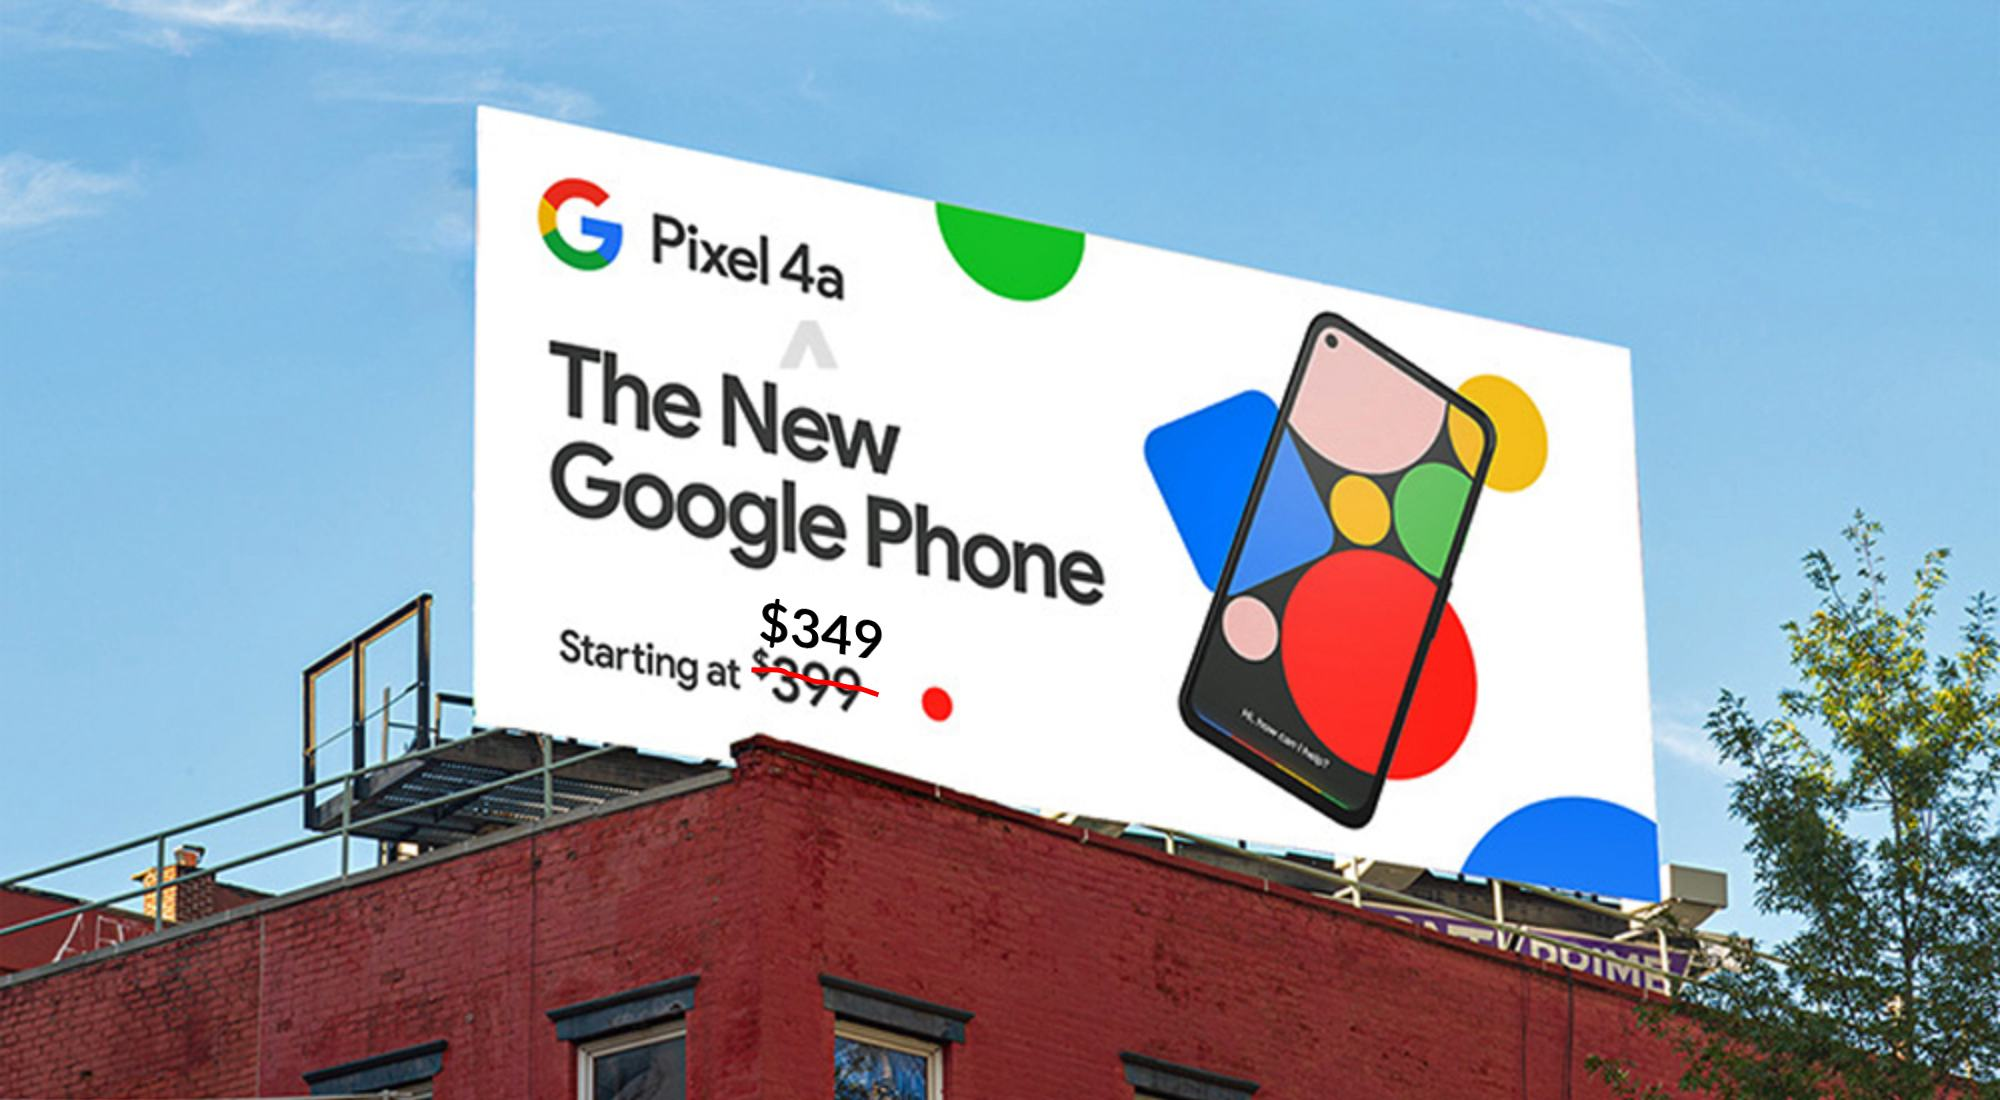 Google Pixel 4a could one-up iPhone SE with $349 starting price for 128GB model